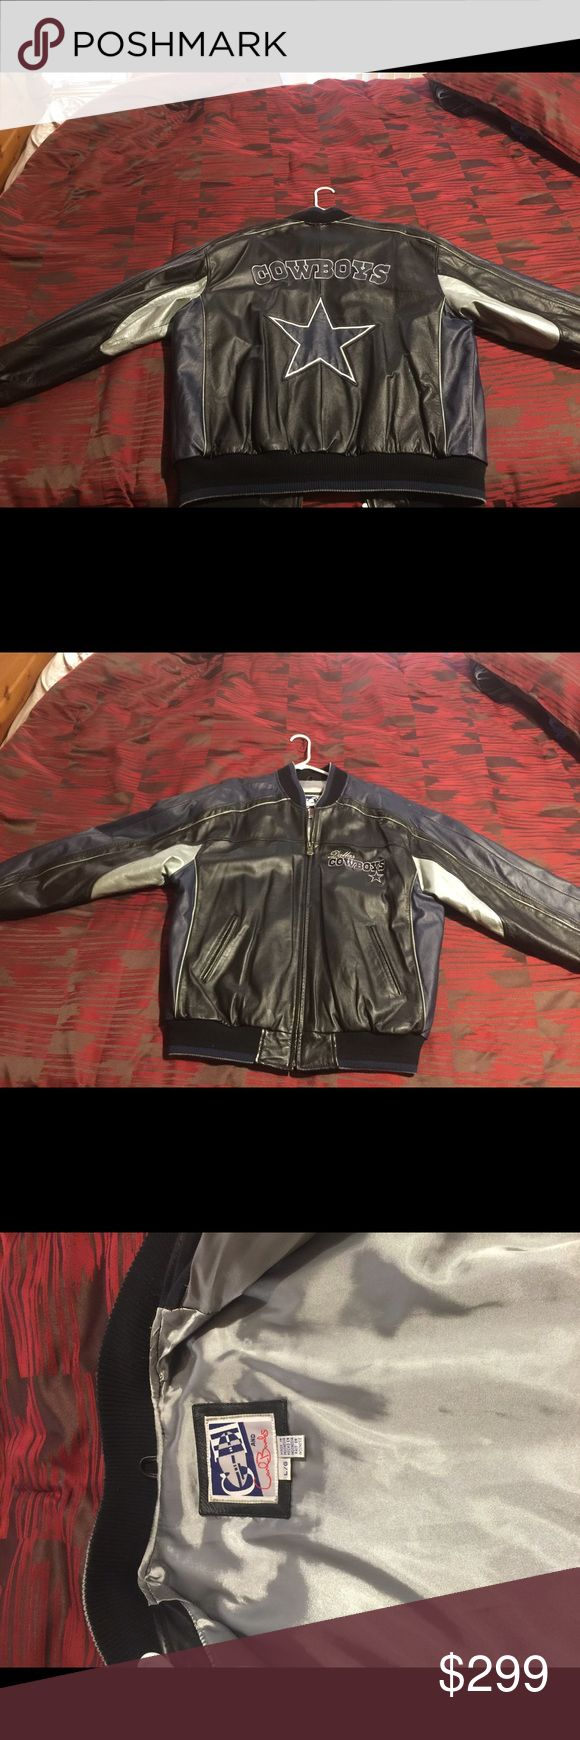 Man Dallas Cowboys jacket ! Almost brand new. Wear couple times but still good. It's a real leather jacket with Dallas convoy star on the back man  Jackets & Coats